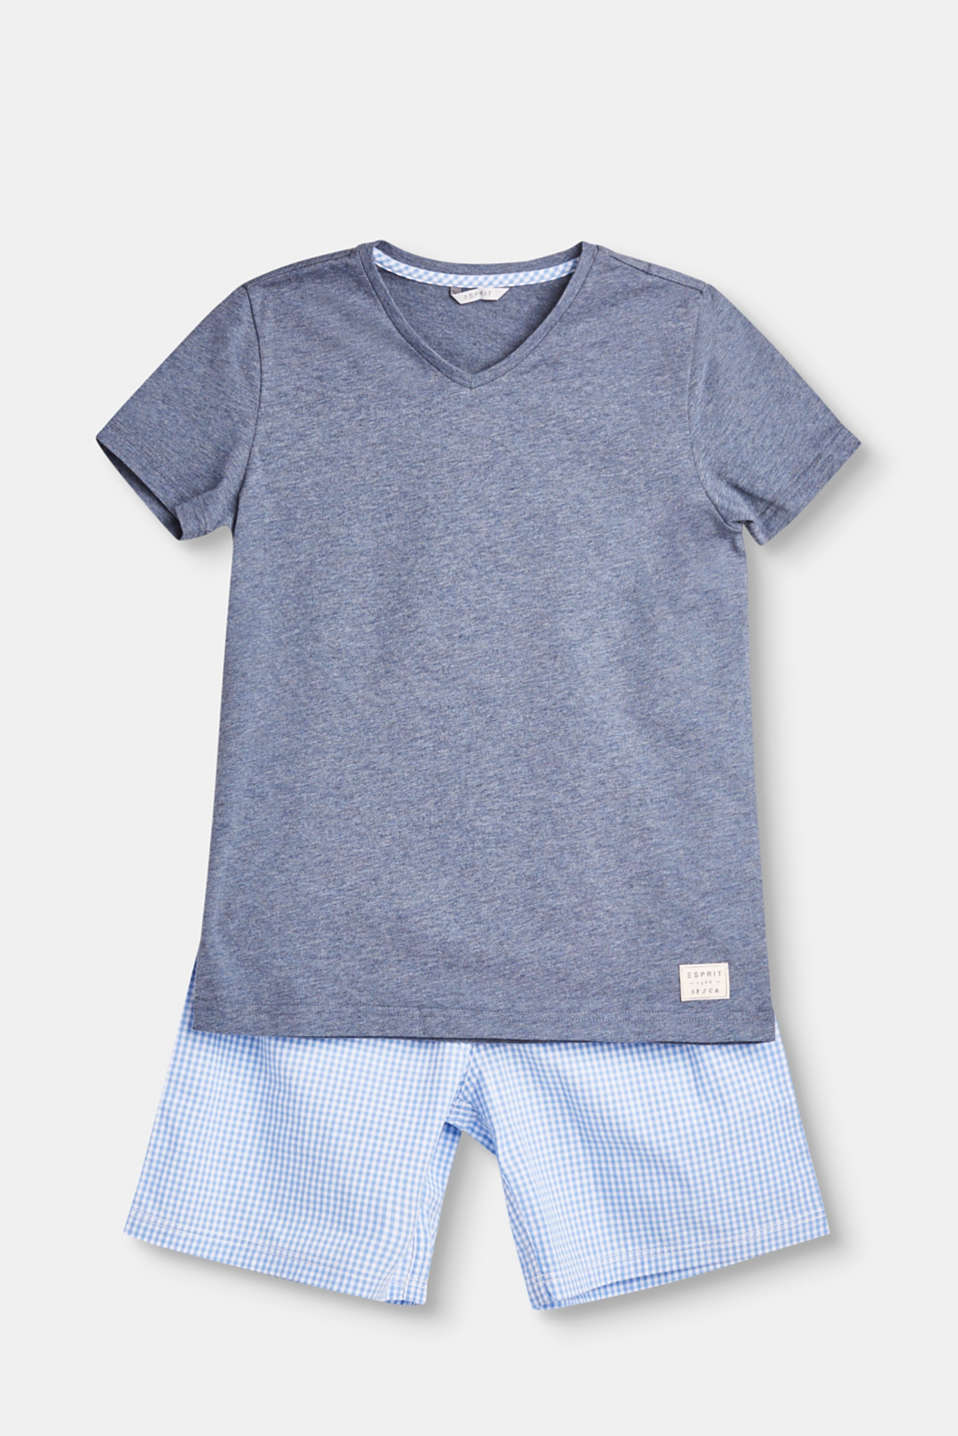 Esprit - Jersey/fabric pyjama set, 100% cotton